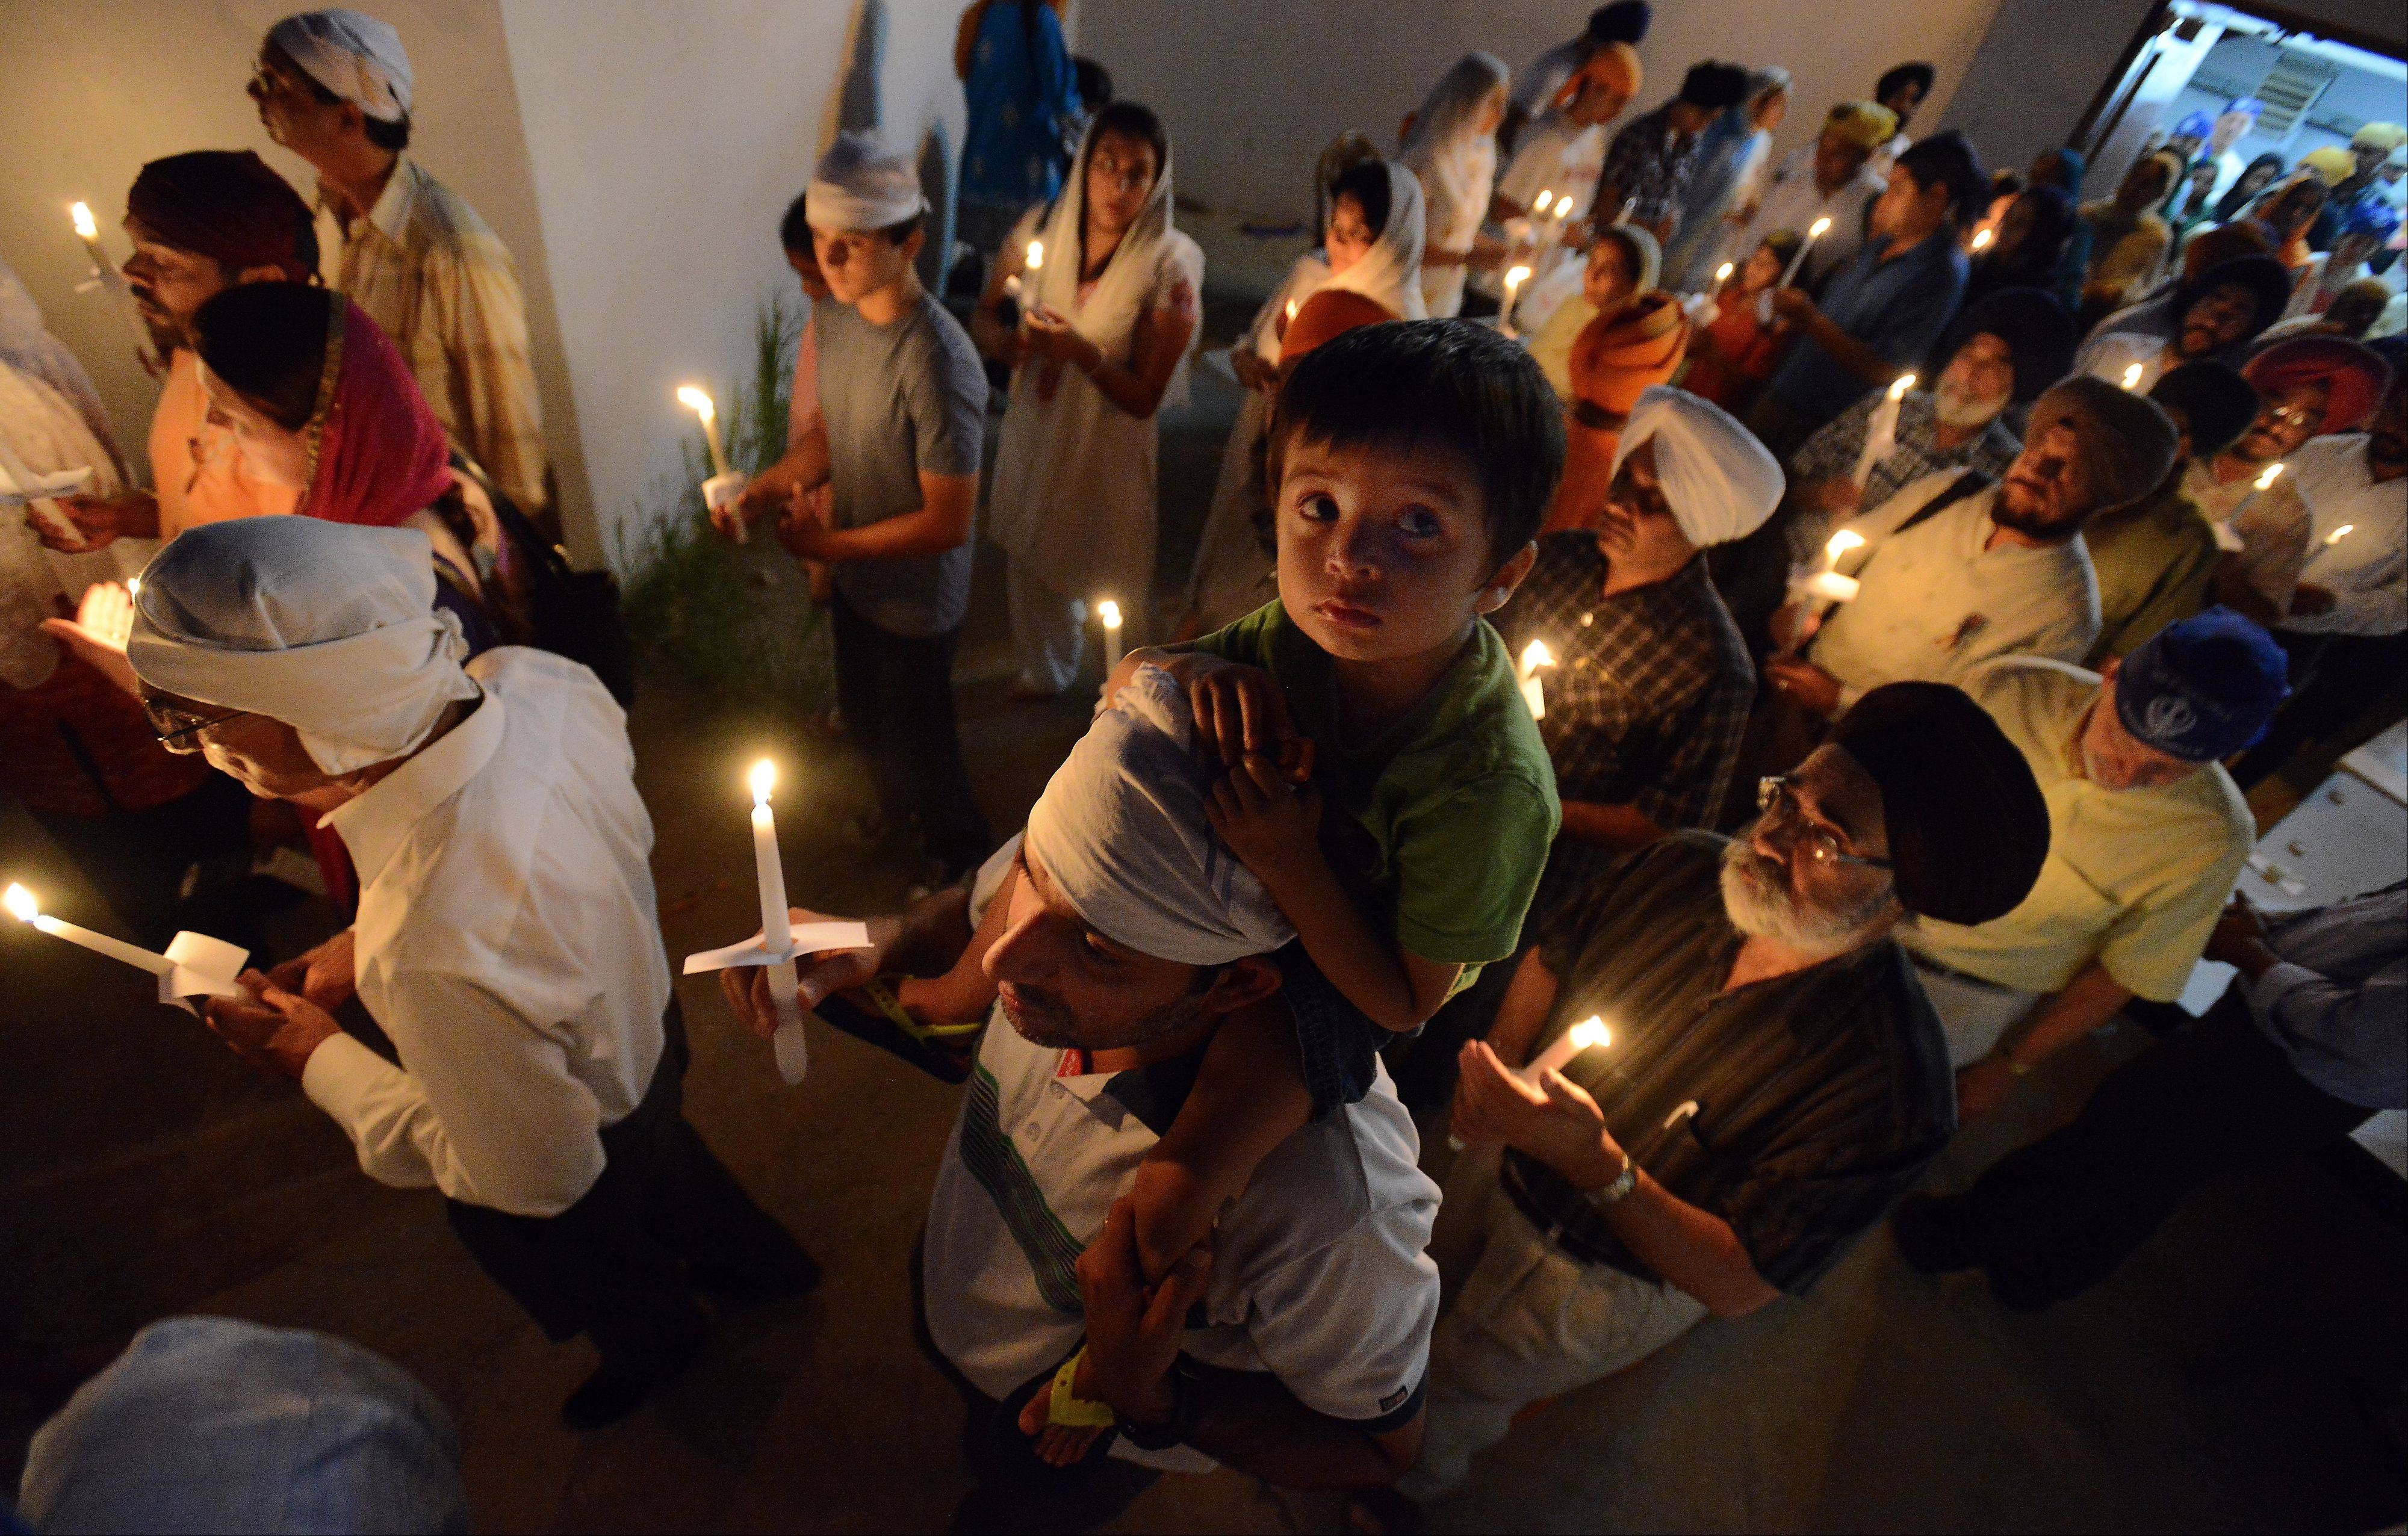 Sikh women and men hold candles for the vigil that was held in Palatine at the Sikh Religious Society temple to honor and remember those who were killed in a Wisconsin Sikh temple shooting.